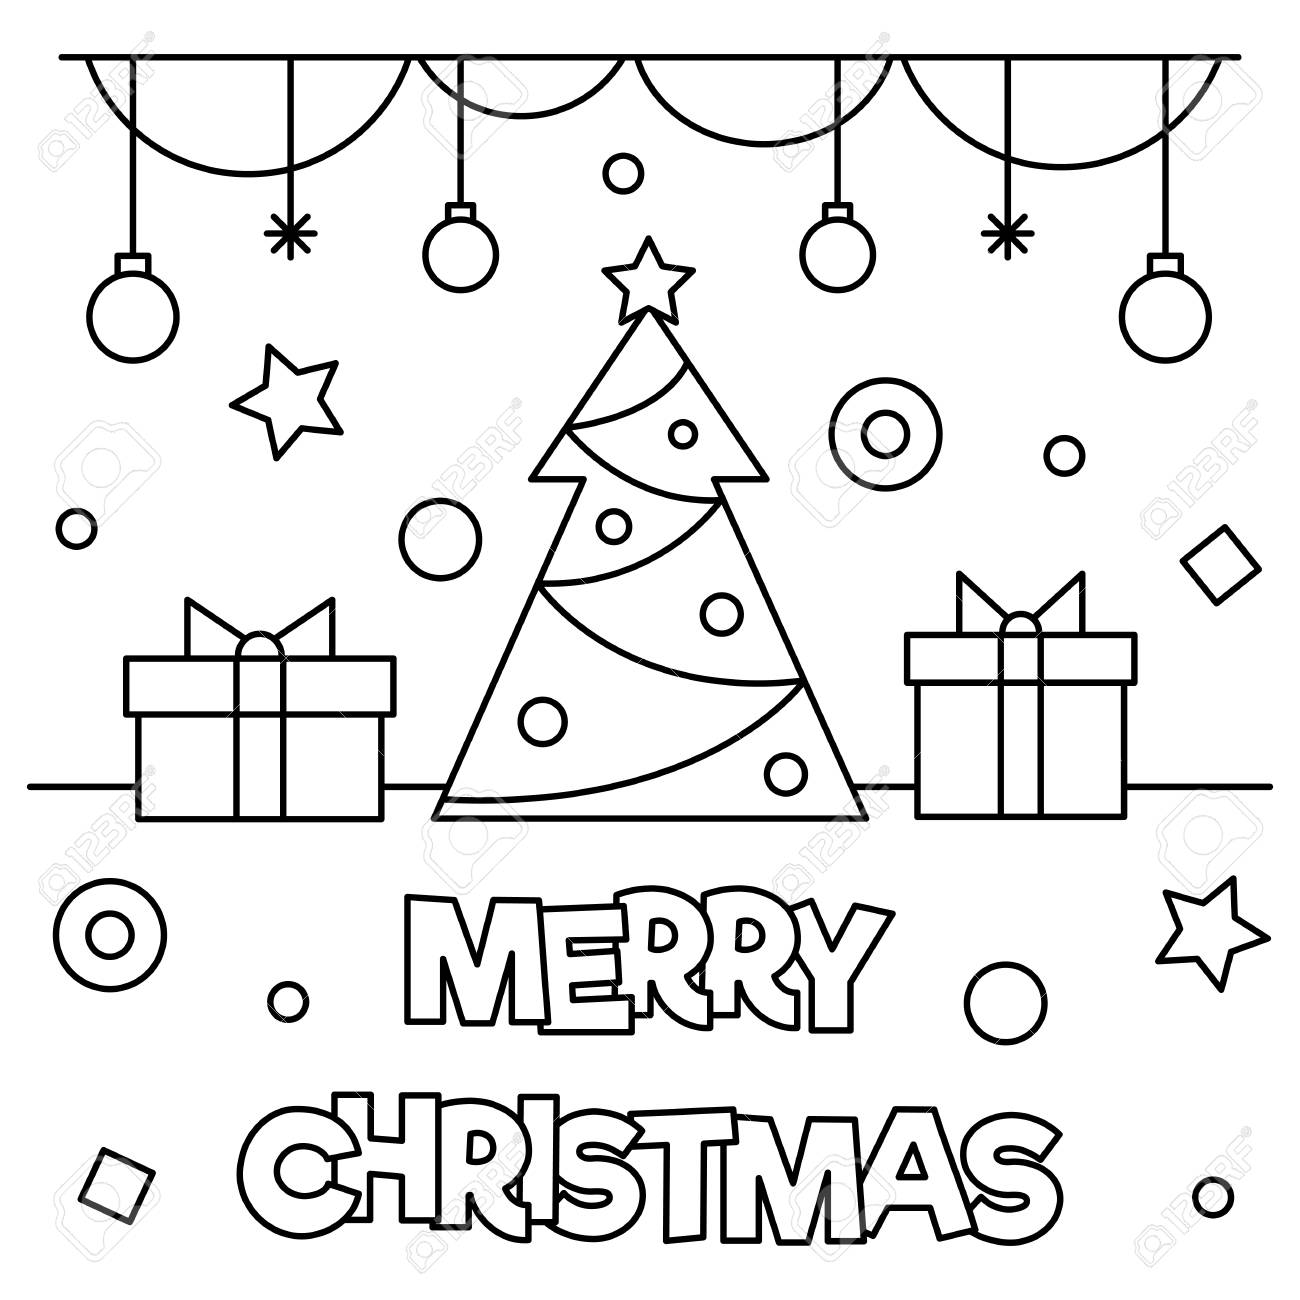 merry christmas coloring page vector illustration stock vector 89276627